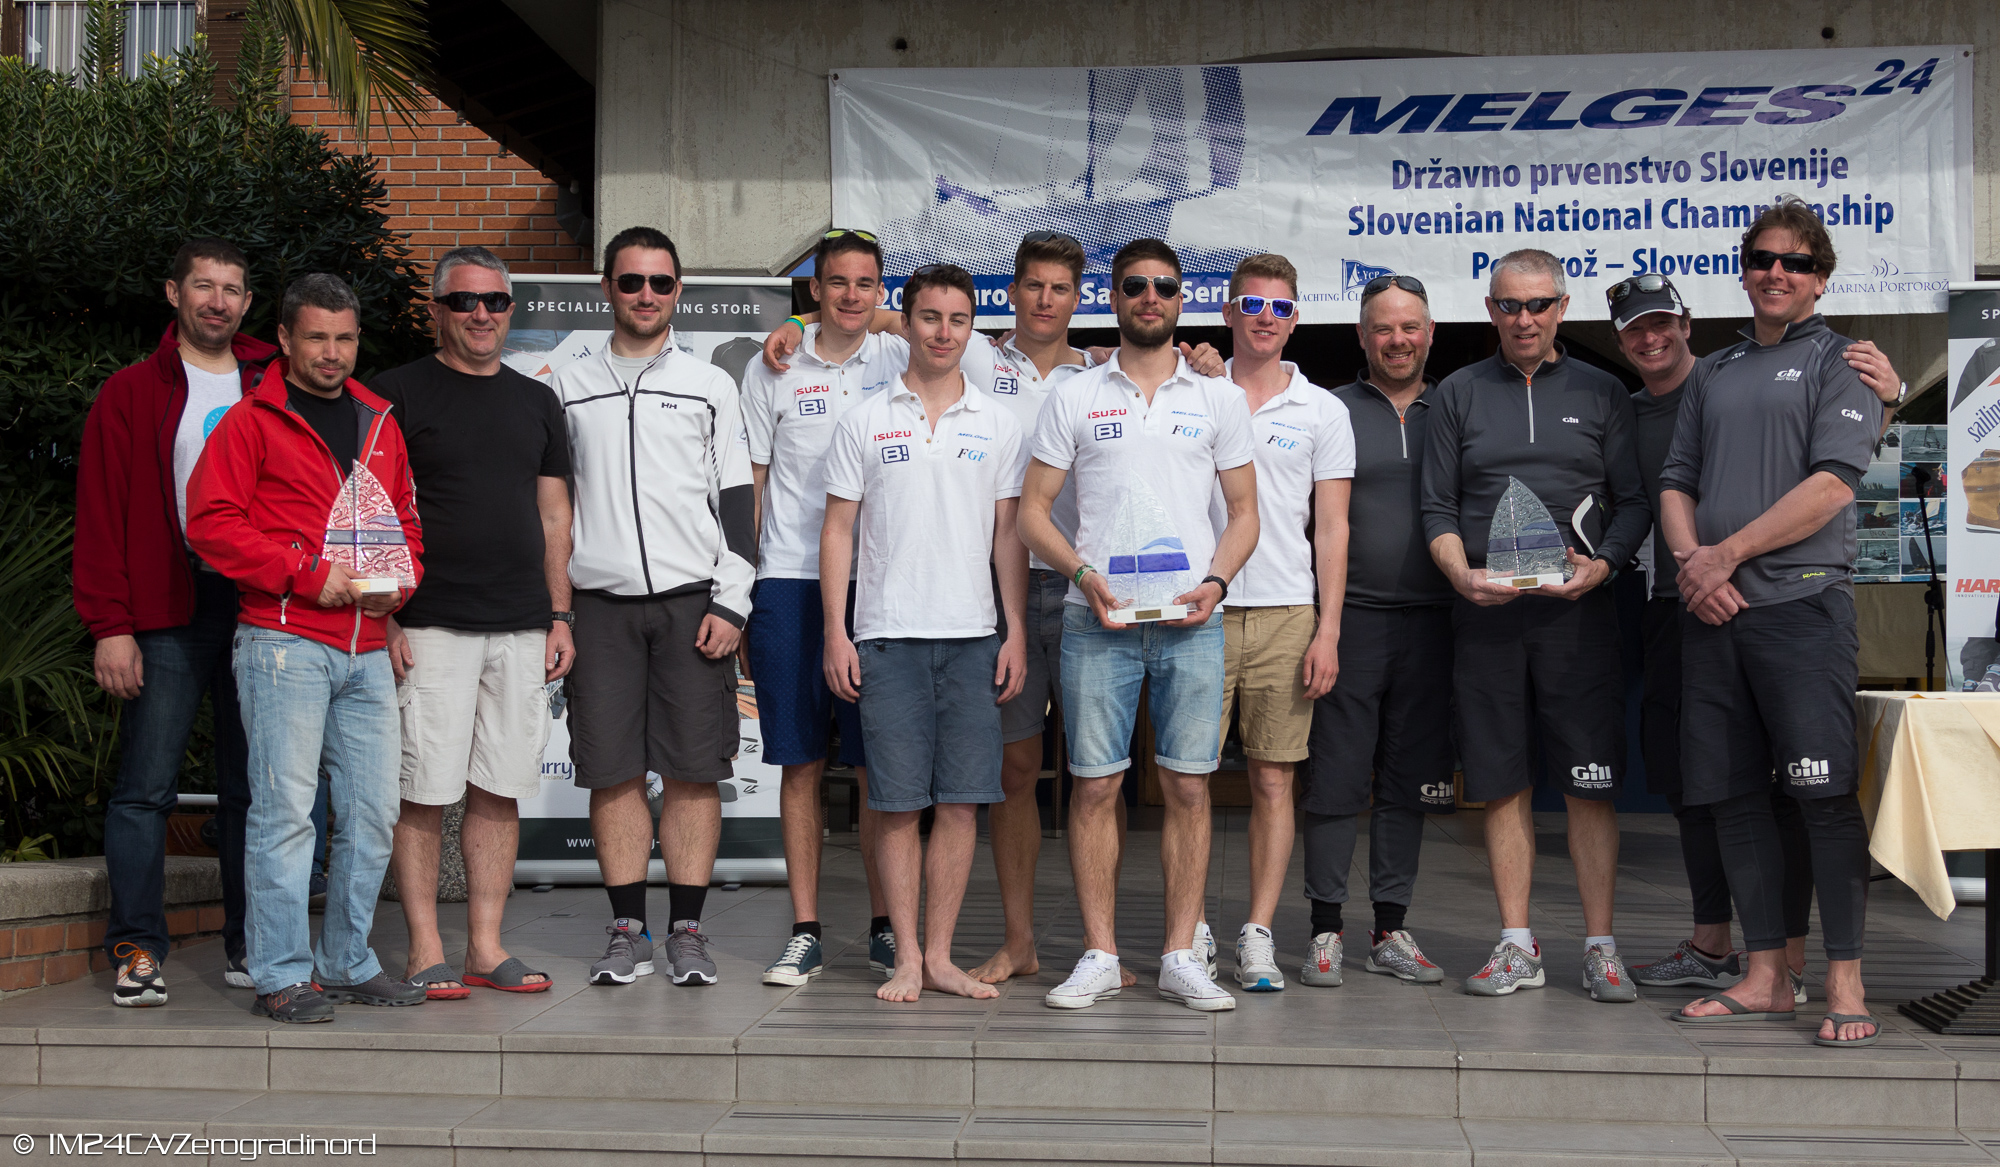 Top 3 Pro Am teams at the Portoroz Melges 24 Regatta